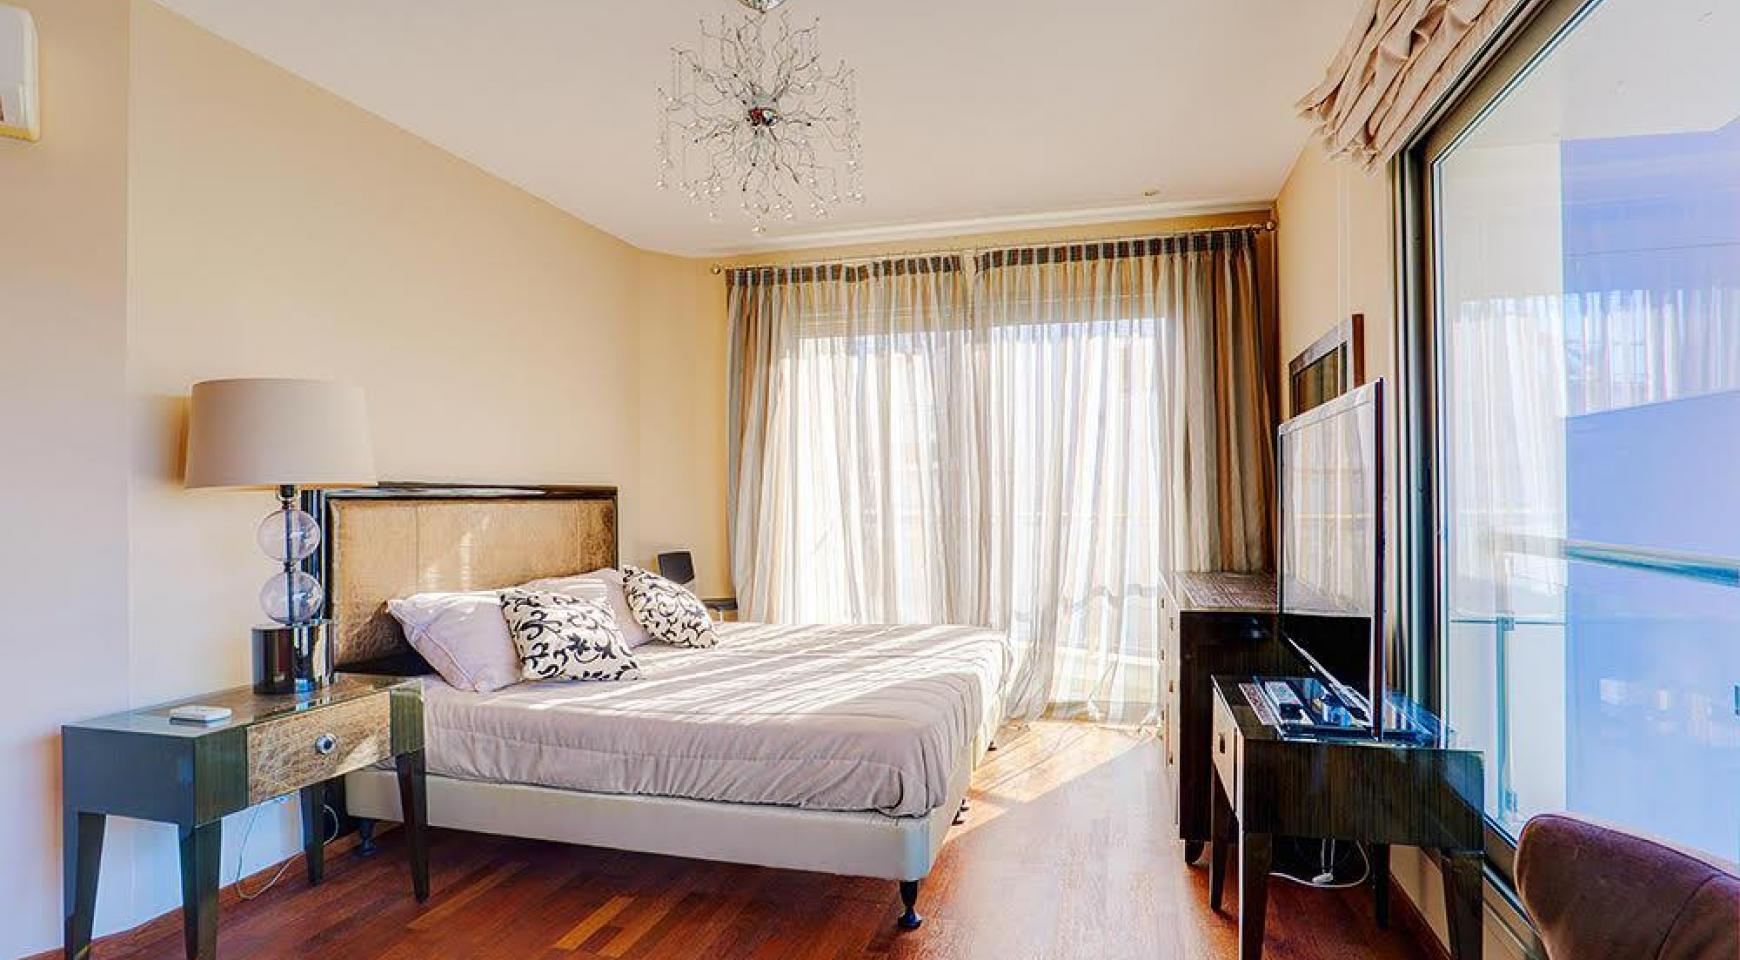 Luxurious 3 Bedroom Apartment Balmyra 22 in a Seafront Complex - 7